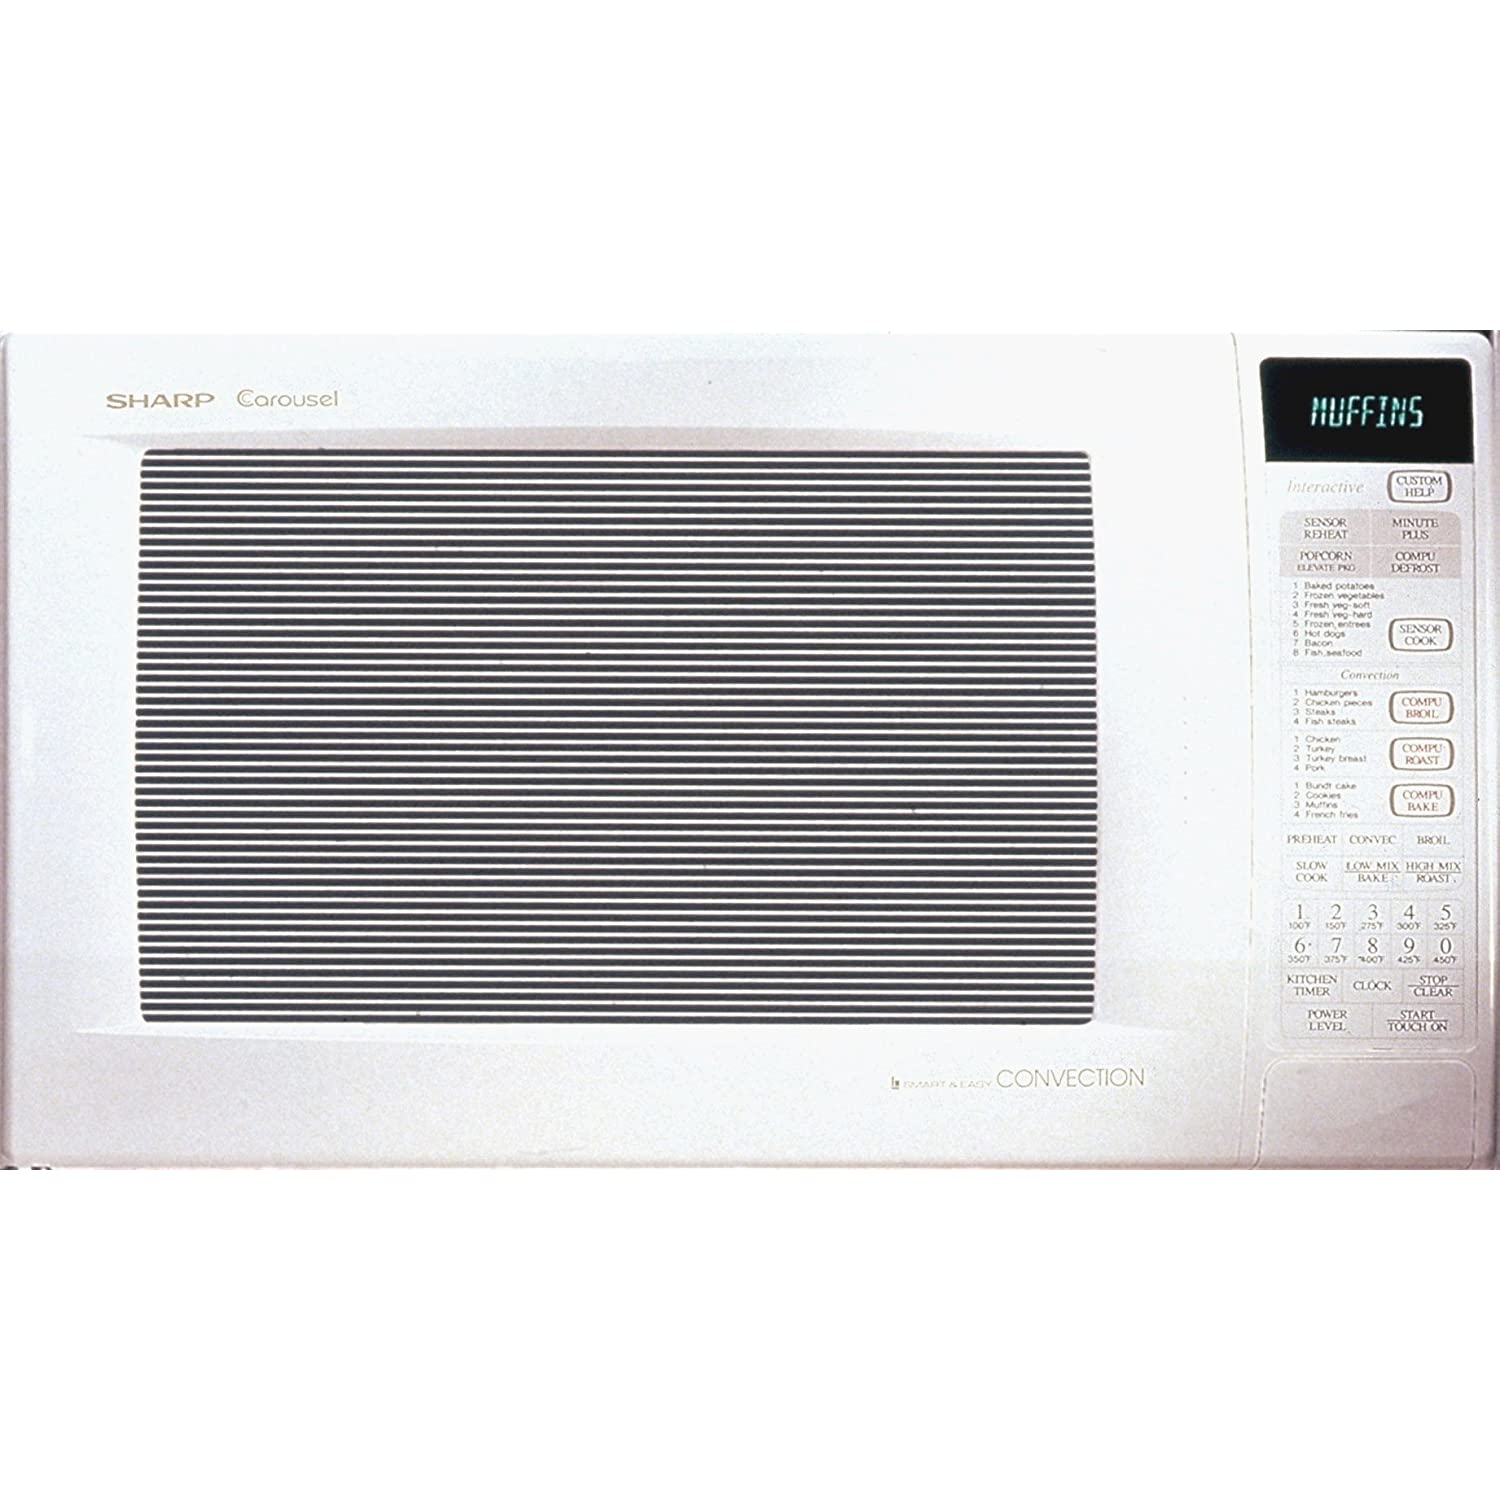 Microwave Ovens Vs Microwave Convection Ovens Vs